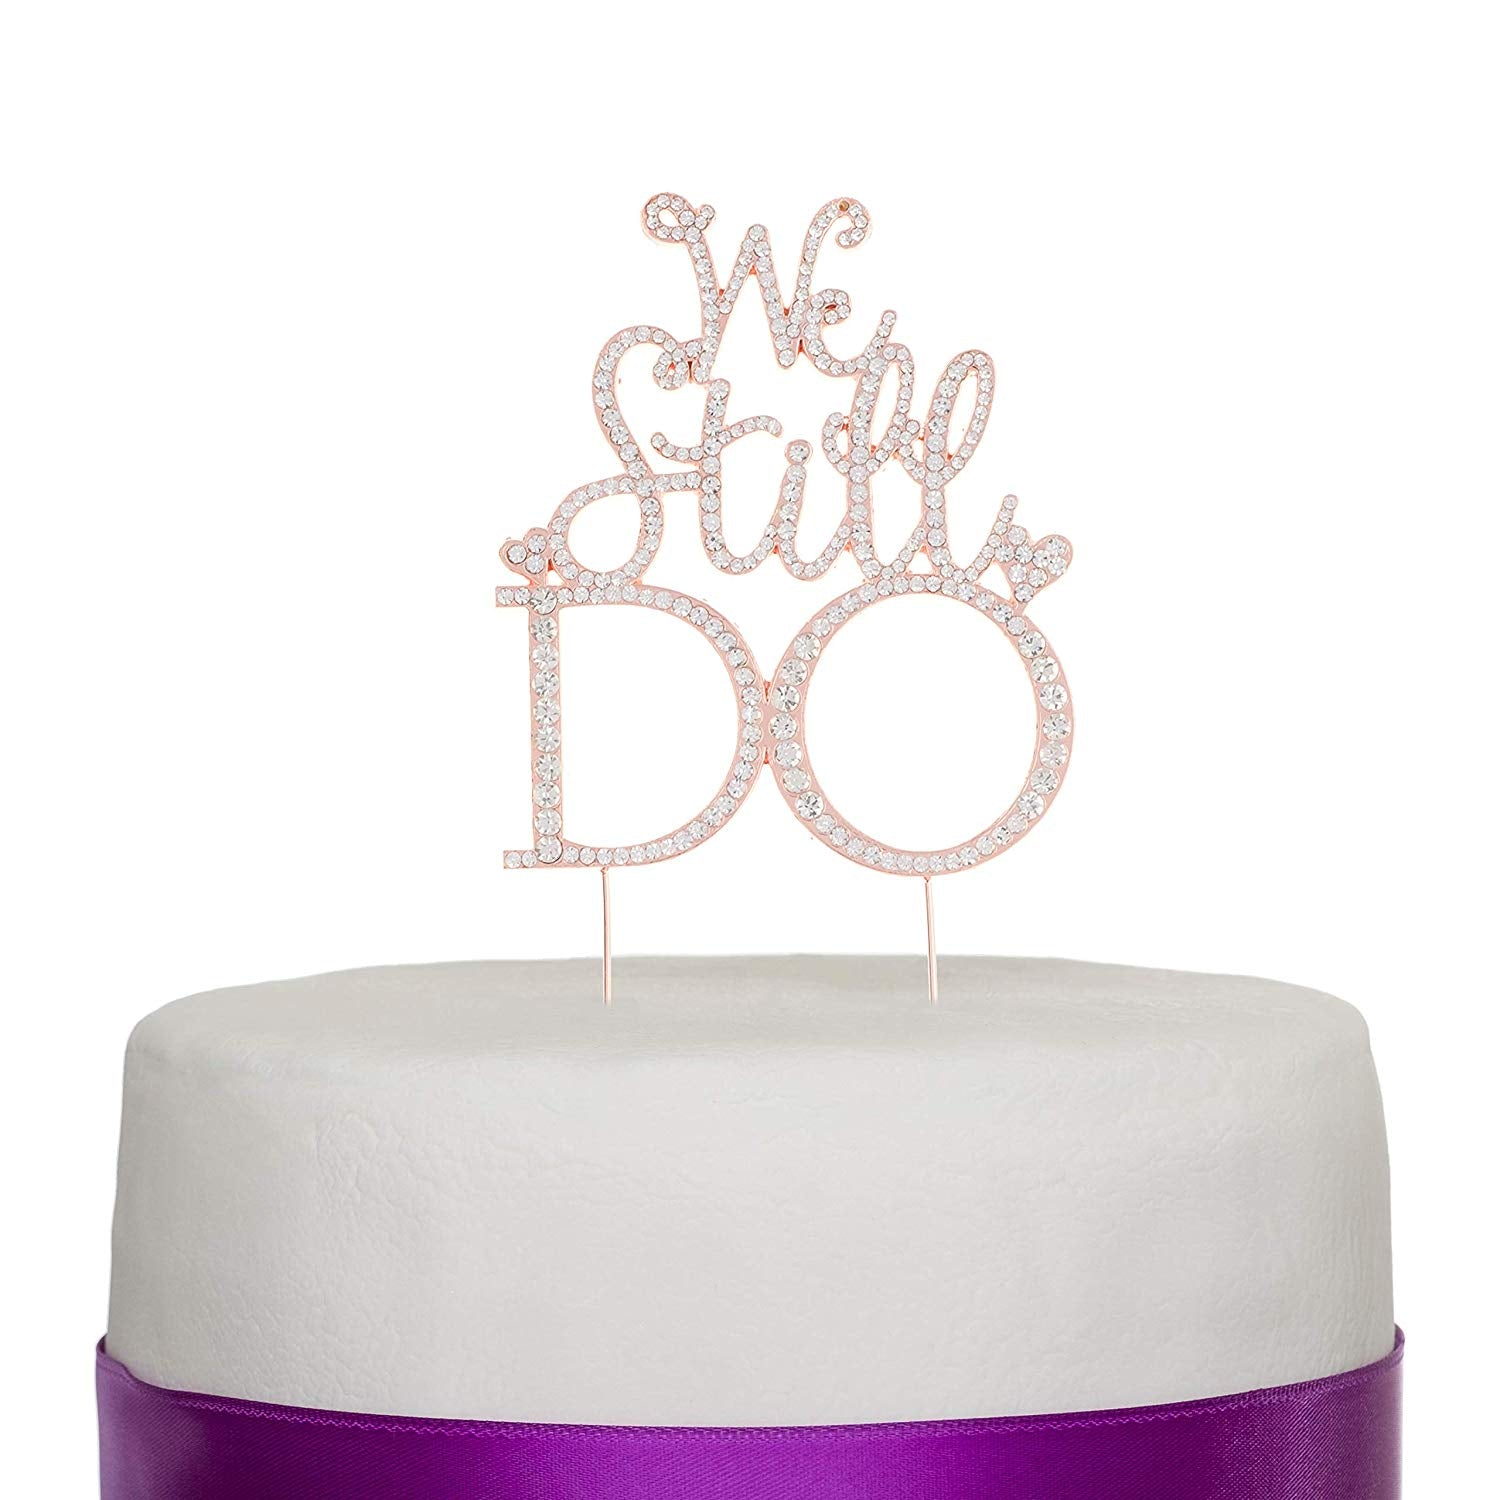 We Still Do Cake Topper - Rose Gold